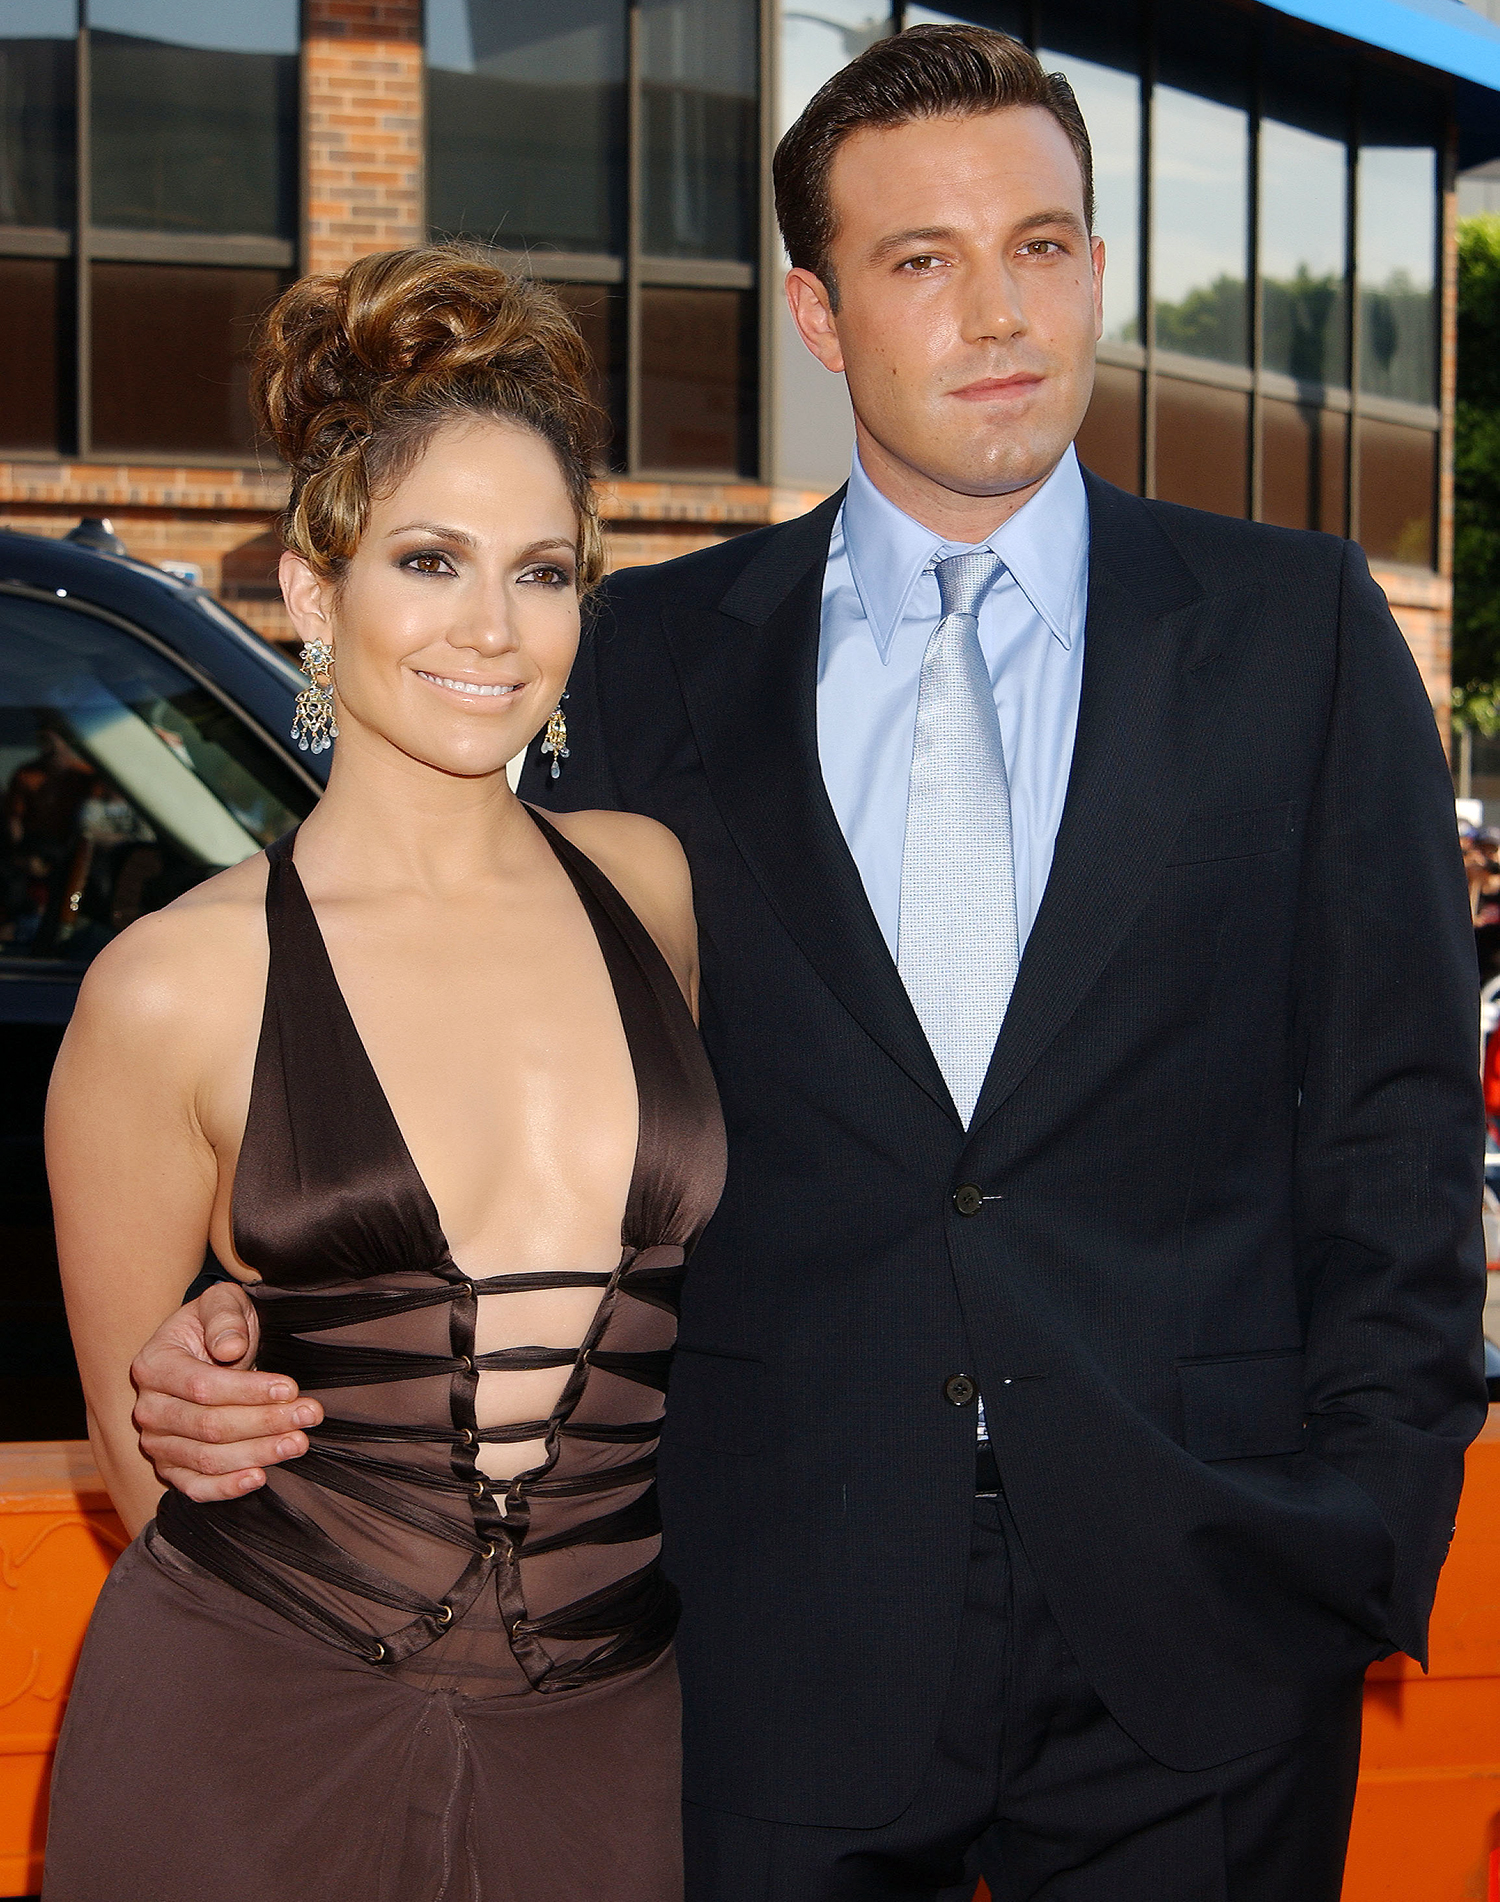 Ben Affleck & Jennifer Lopez at the National Theatre in Westwood, California